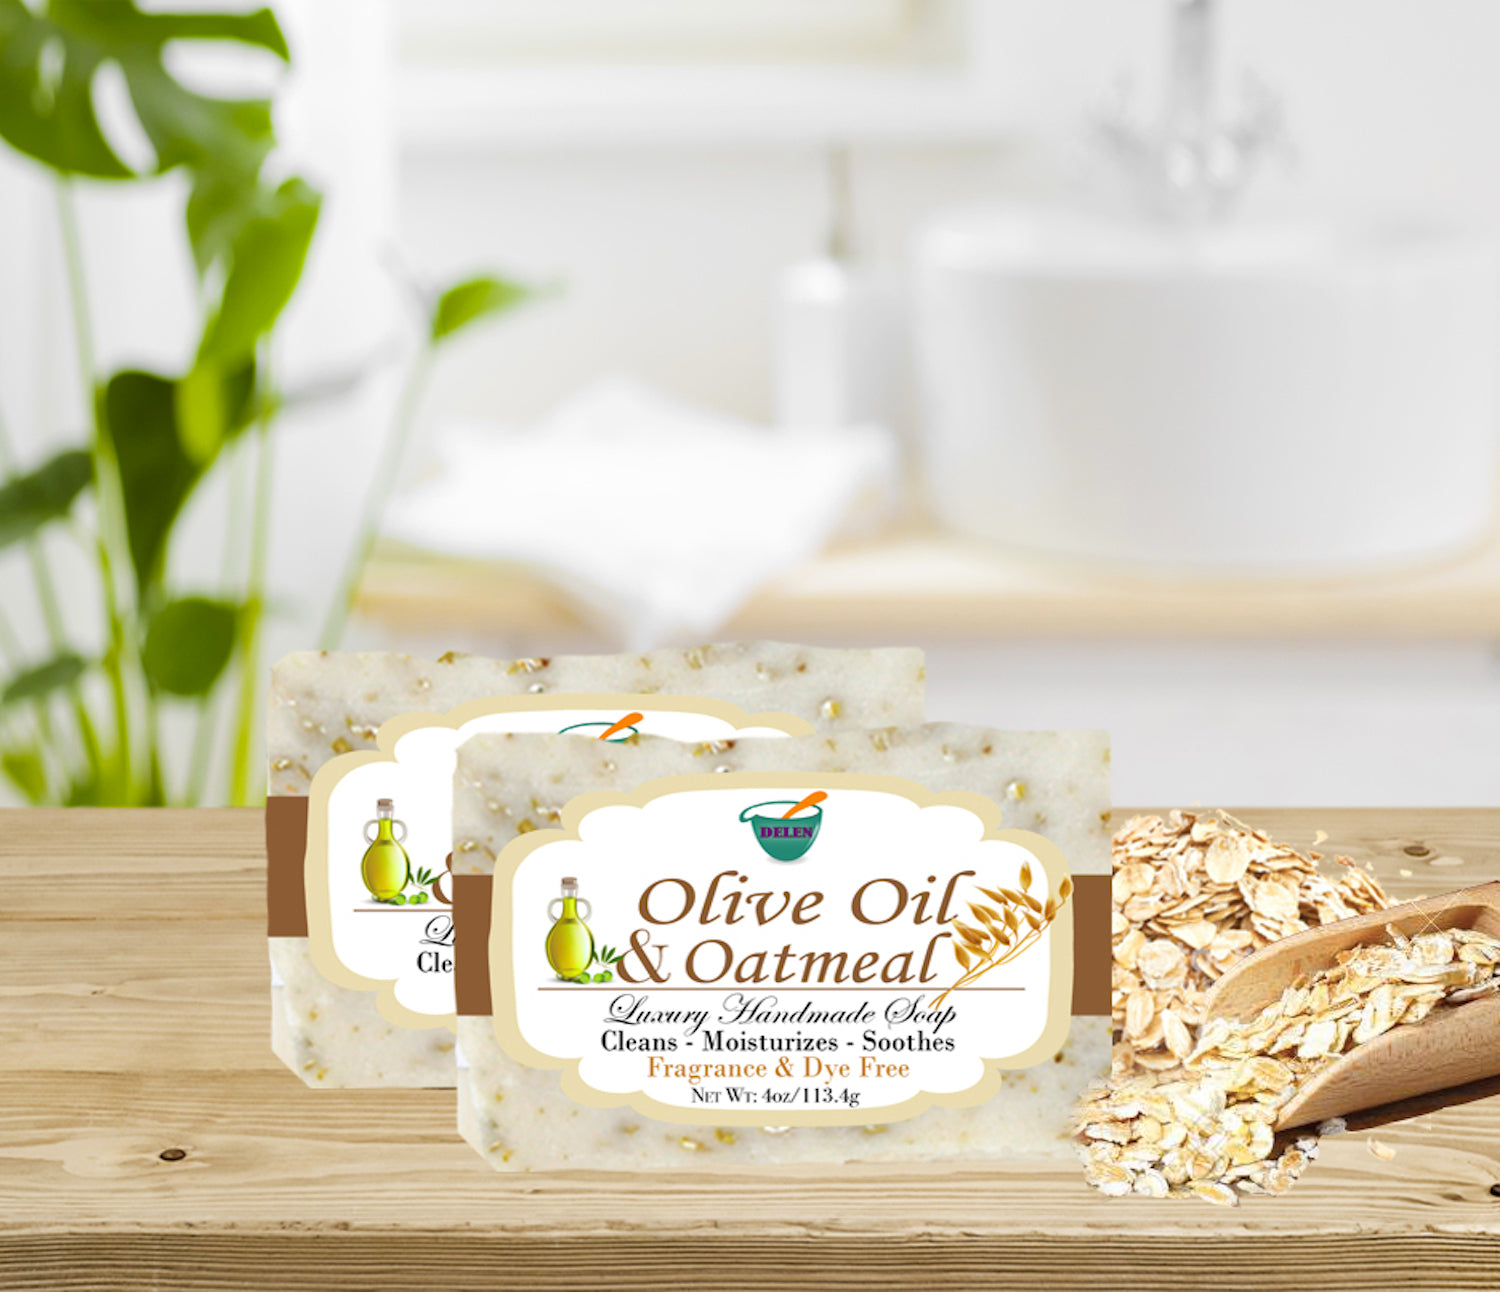 OLIVE OIL & OATMEAL                                                   4oz BAR SOAP